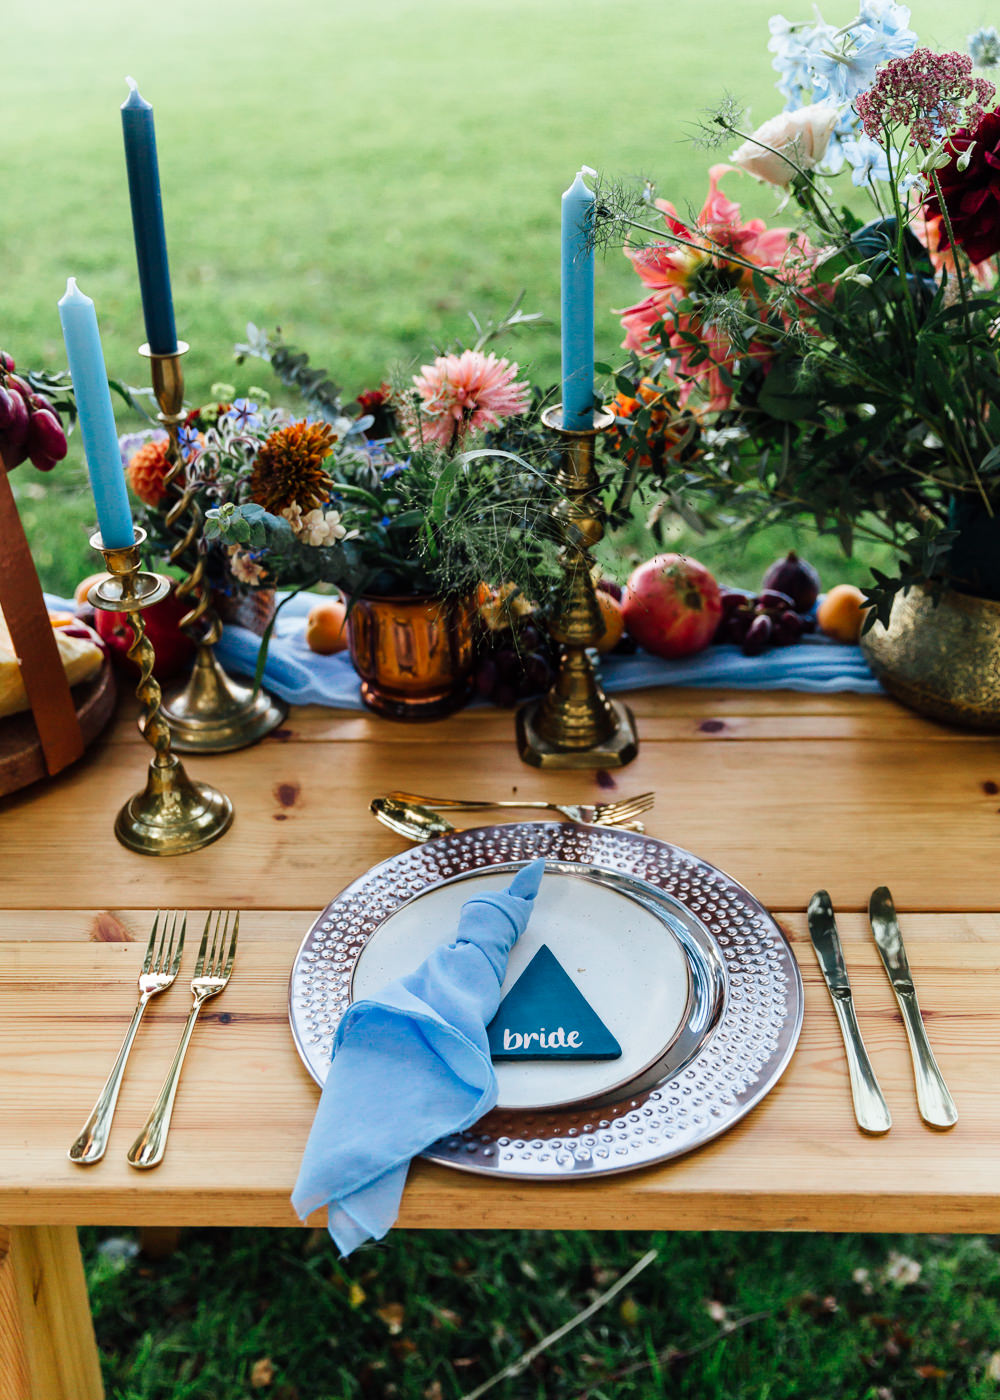 Decor Table Tablescape Flowers Candles Decoration Autumn Festival Wedding Ideas Indigo and Violet Photography